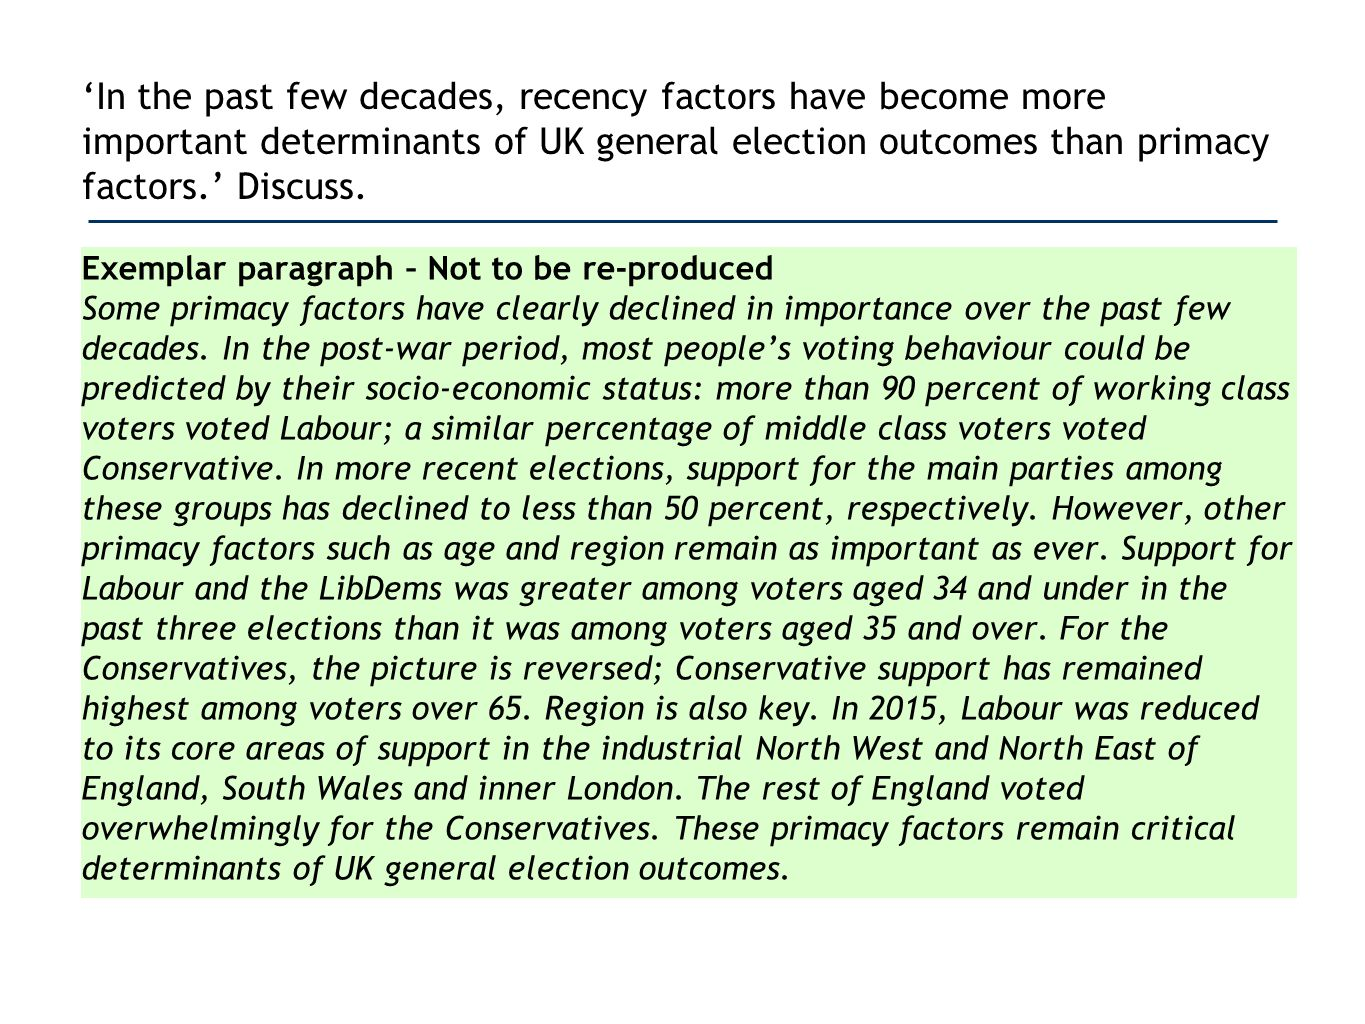 'In the past few decades, recency factors have become more important determinants of UK general election outcomes than primacy factors.' Discuss.